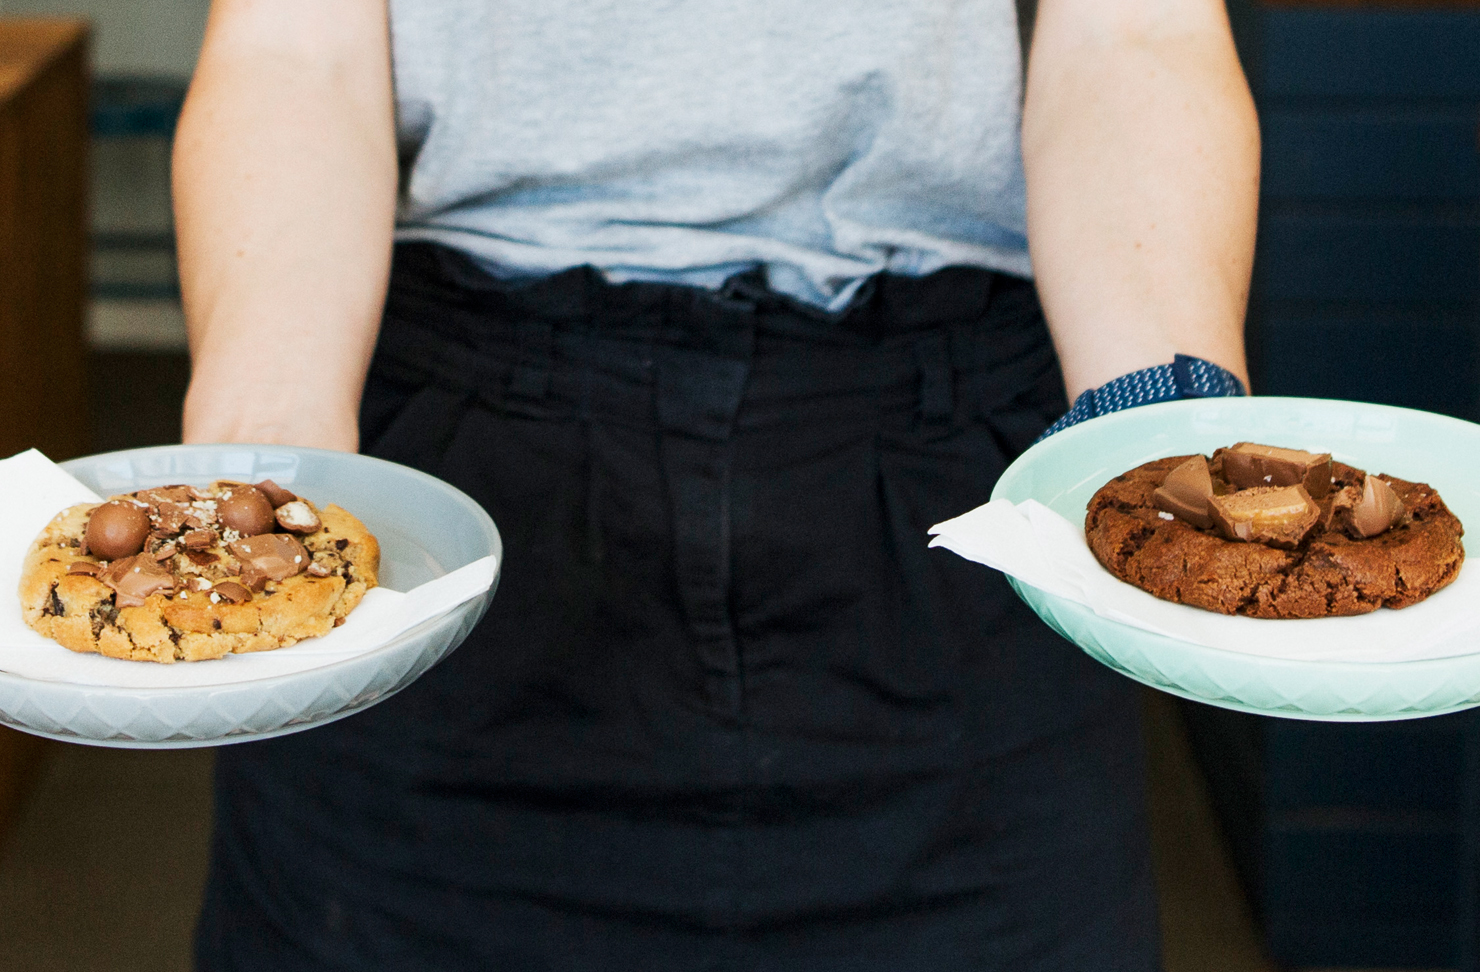 A waitress holds a plate in each hand with a housemade cookie on each.